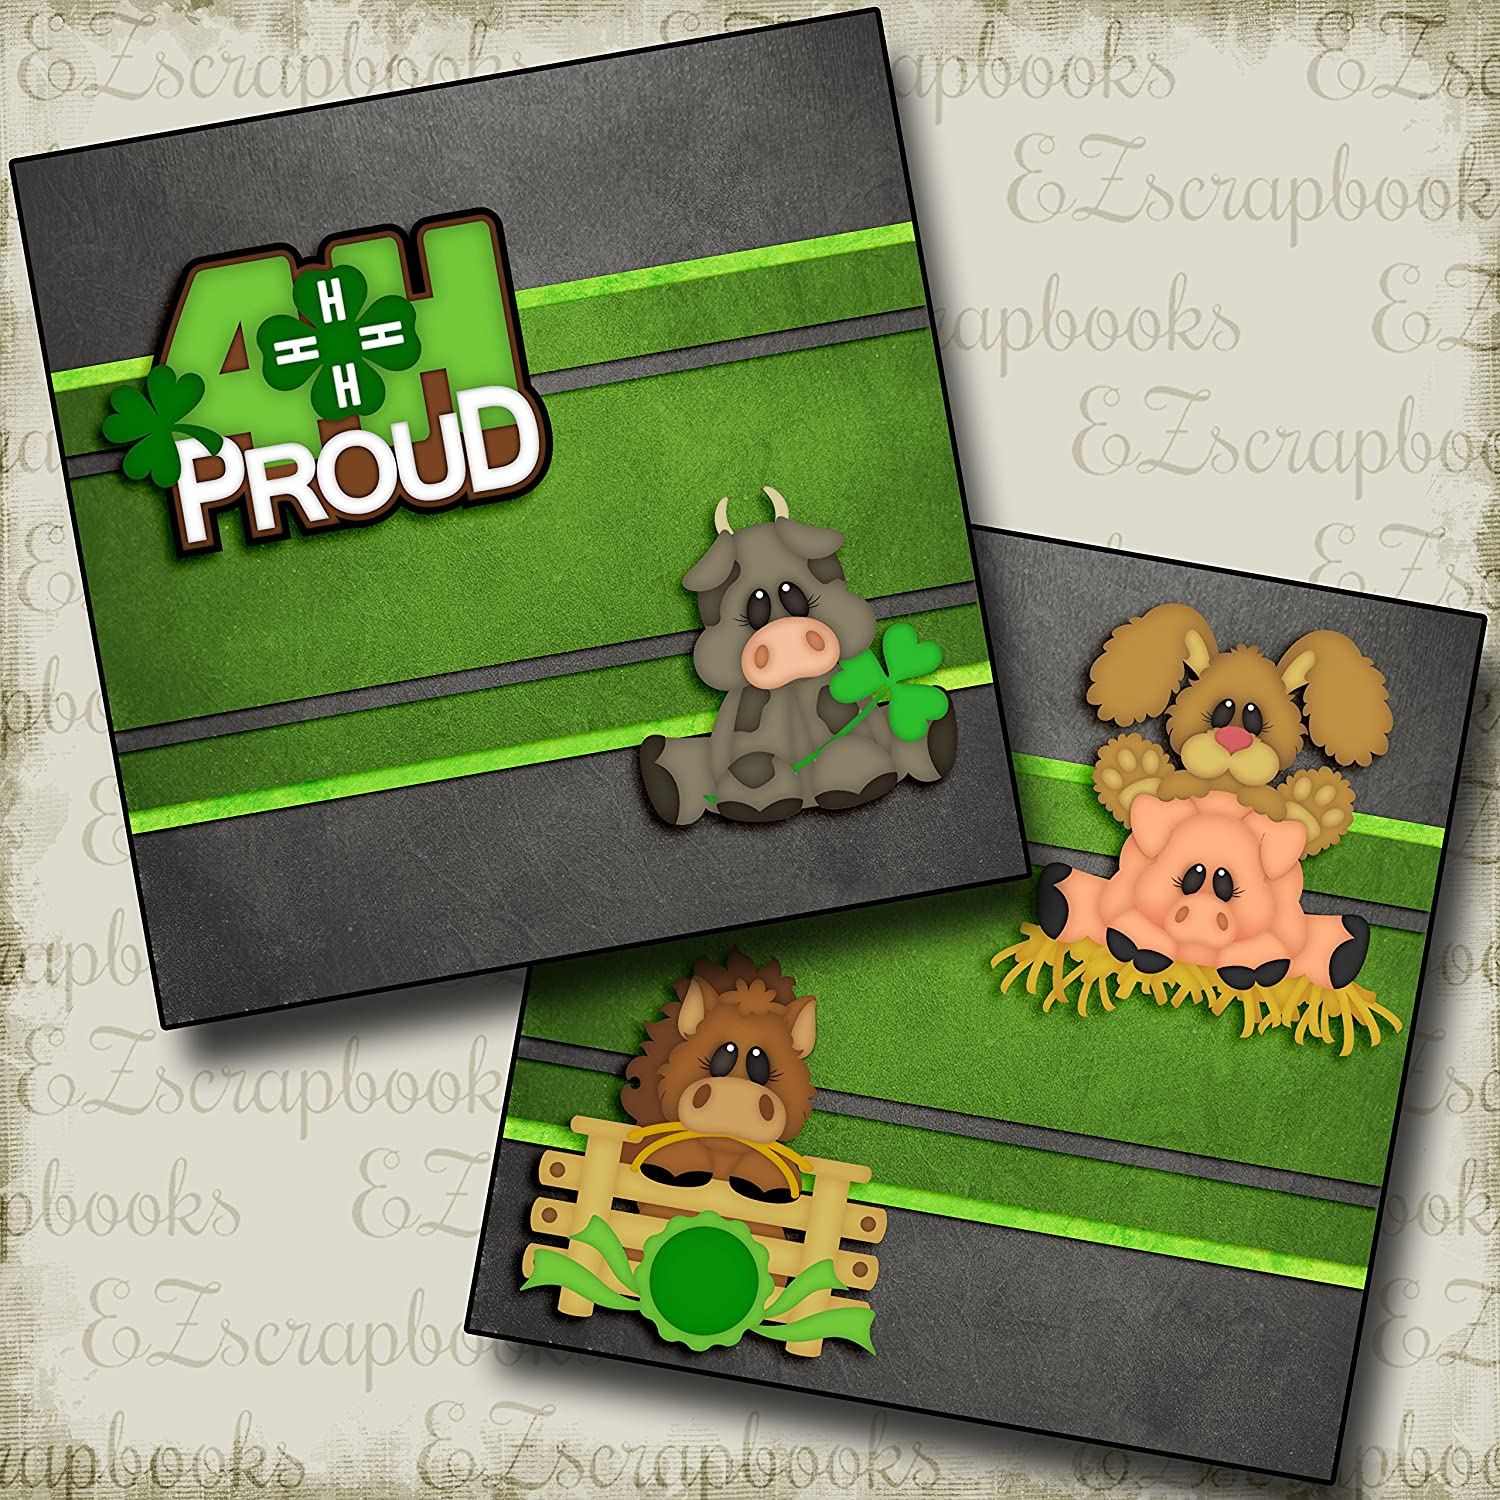 4H PROUD Non-Photo-Mat Premade Scrapbook Pages EZ Layout 2792